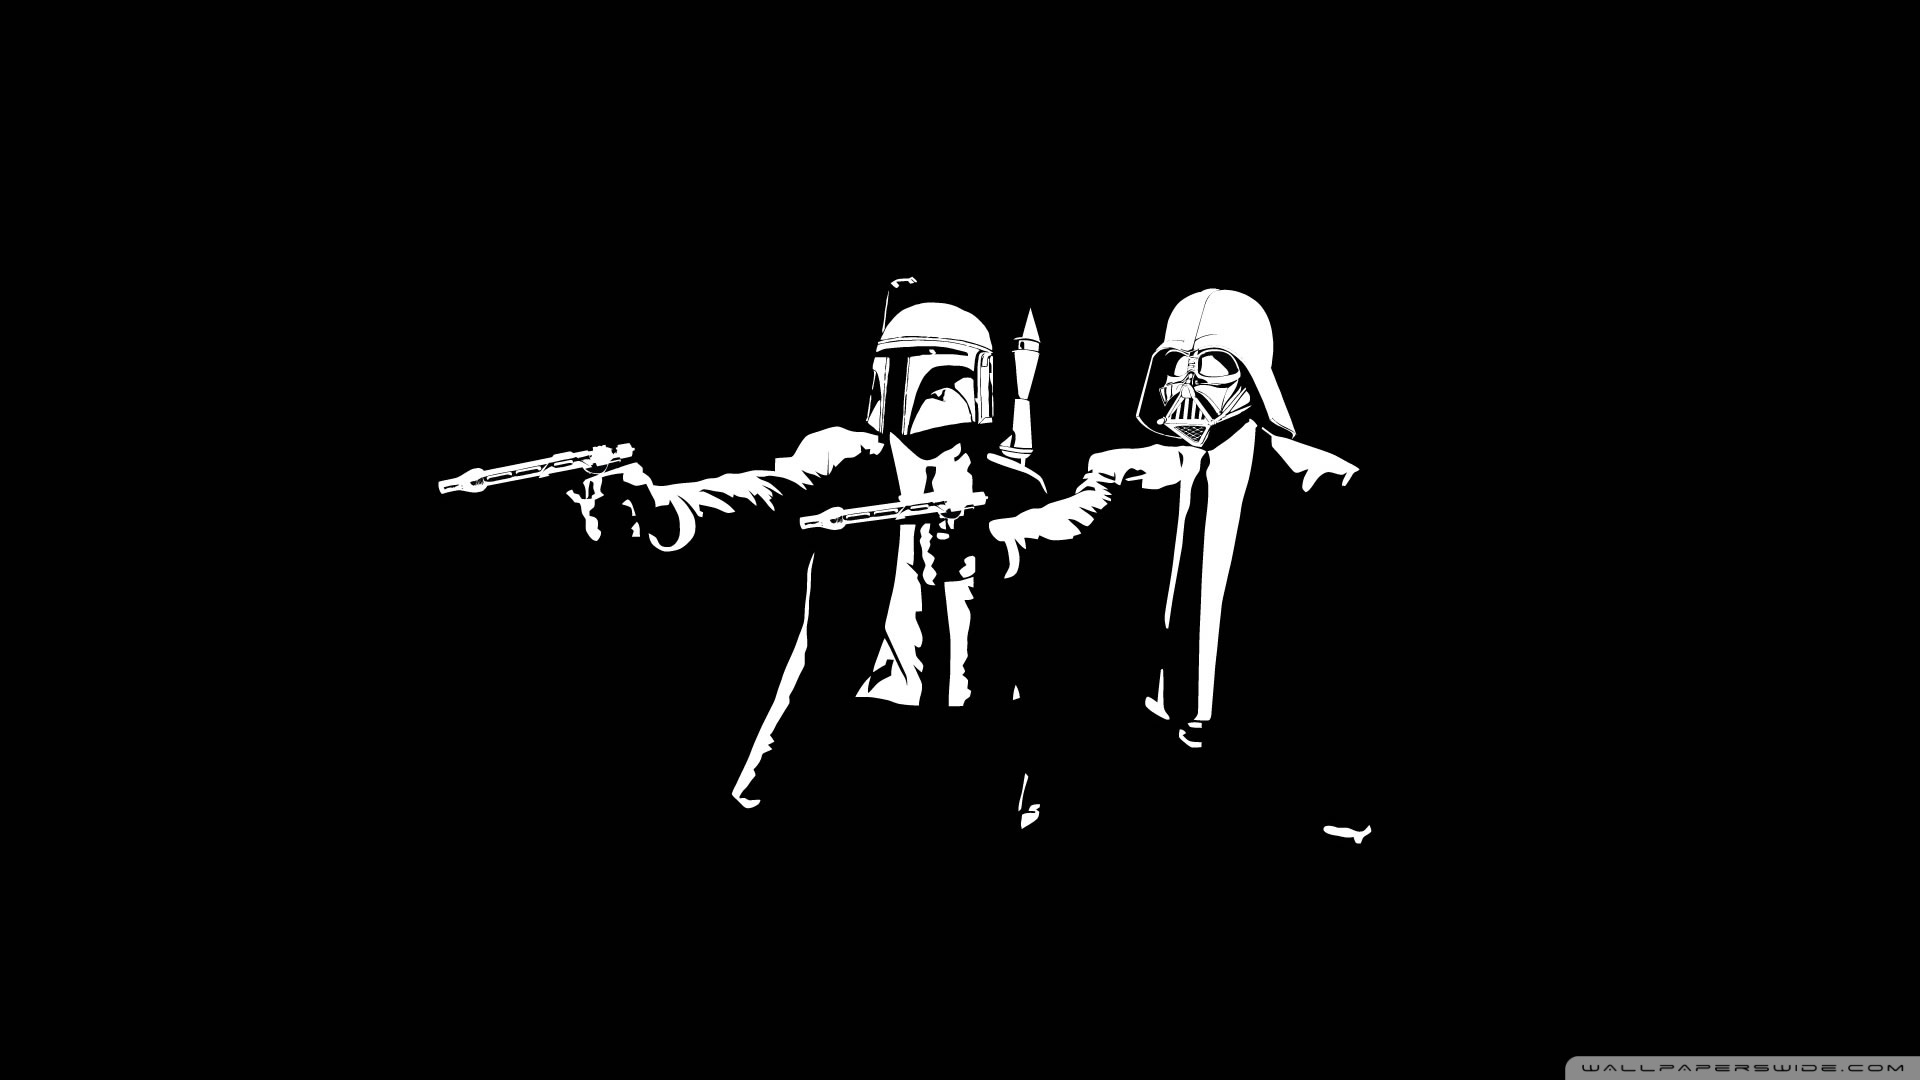 star wars pulp fiction ❤ 4k hd desktop wallpaper for 4k ultra hd